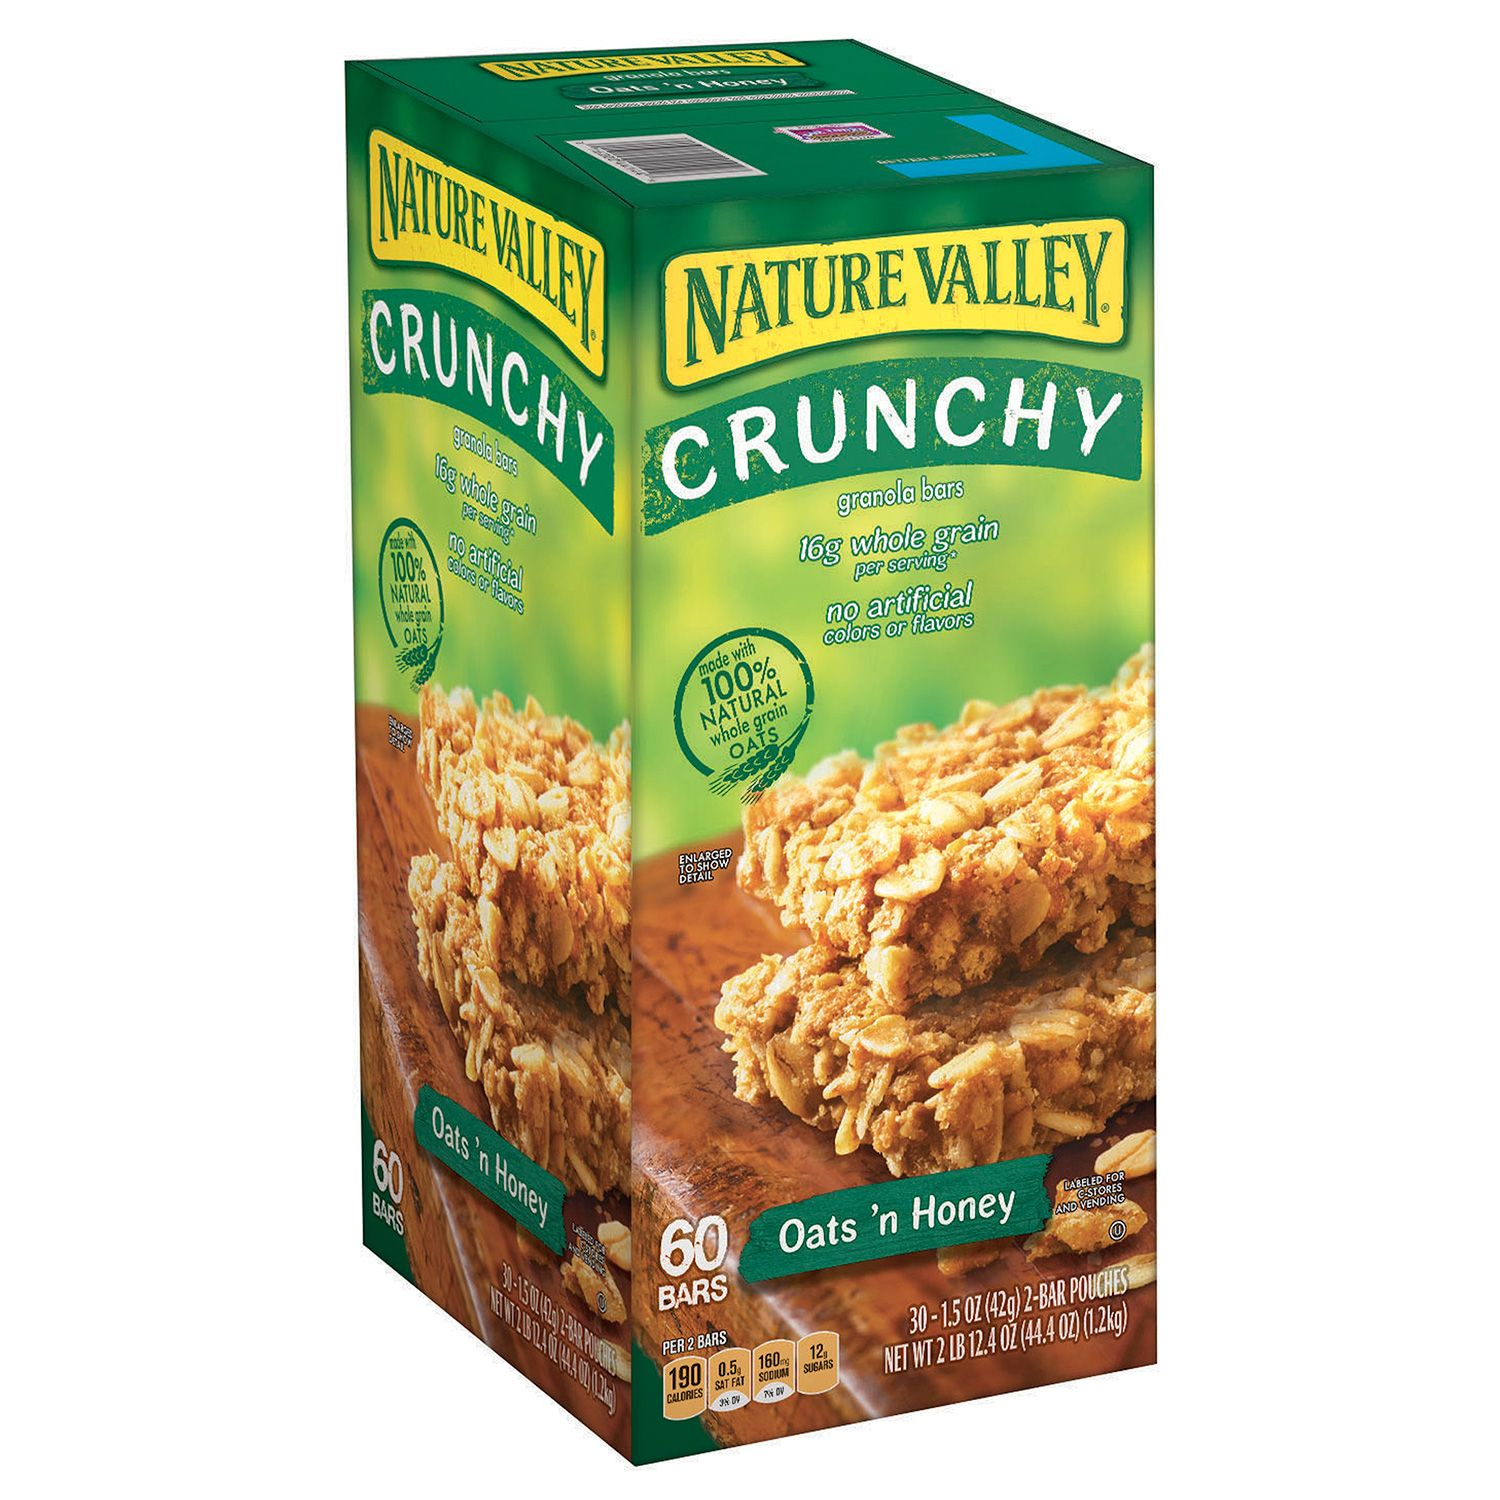 Nature Valley Oats 'N Honey Crunchy Granola Bars 60ct | eBay